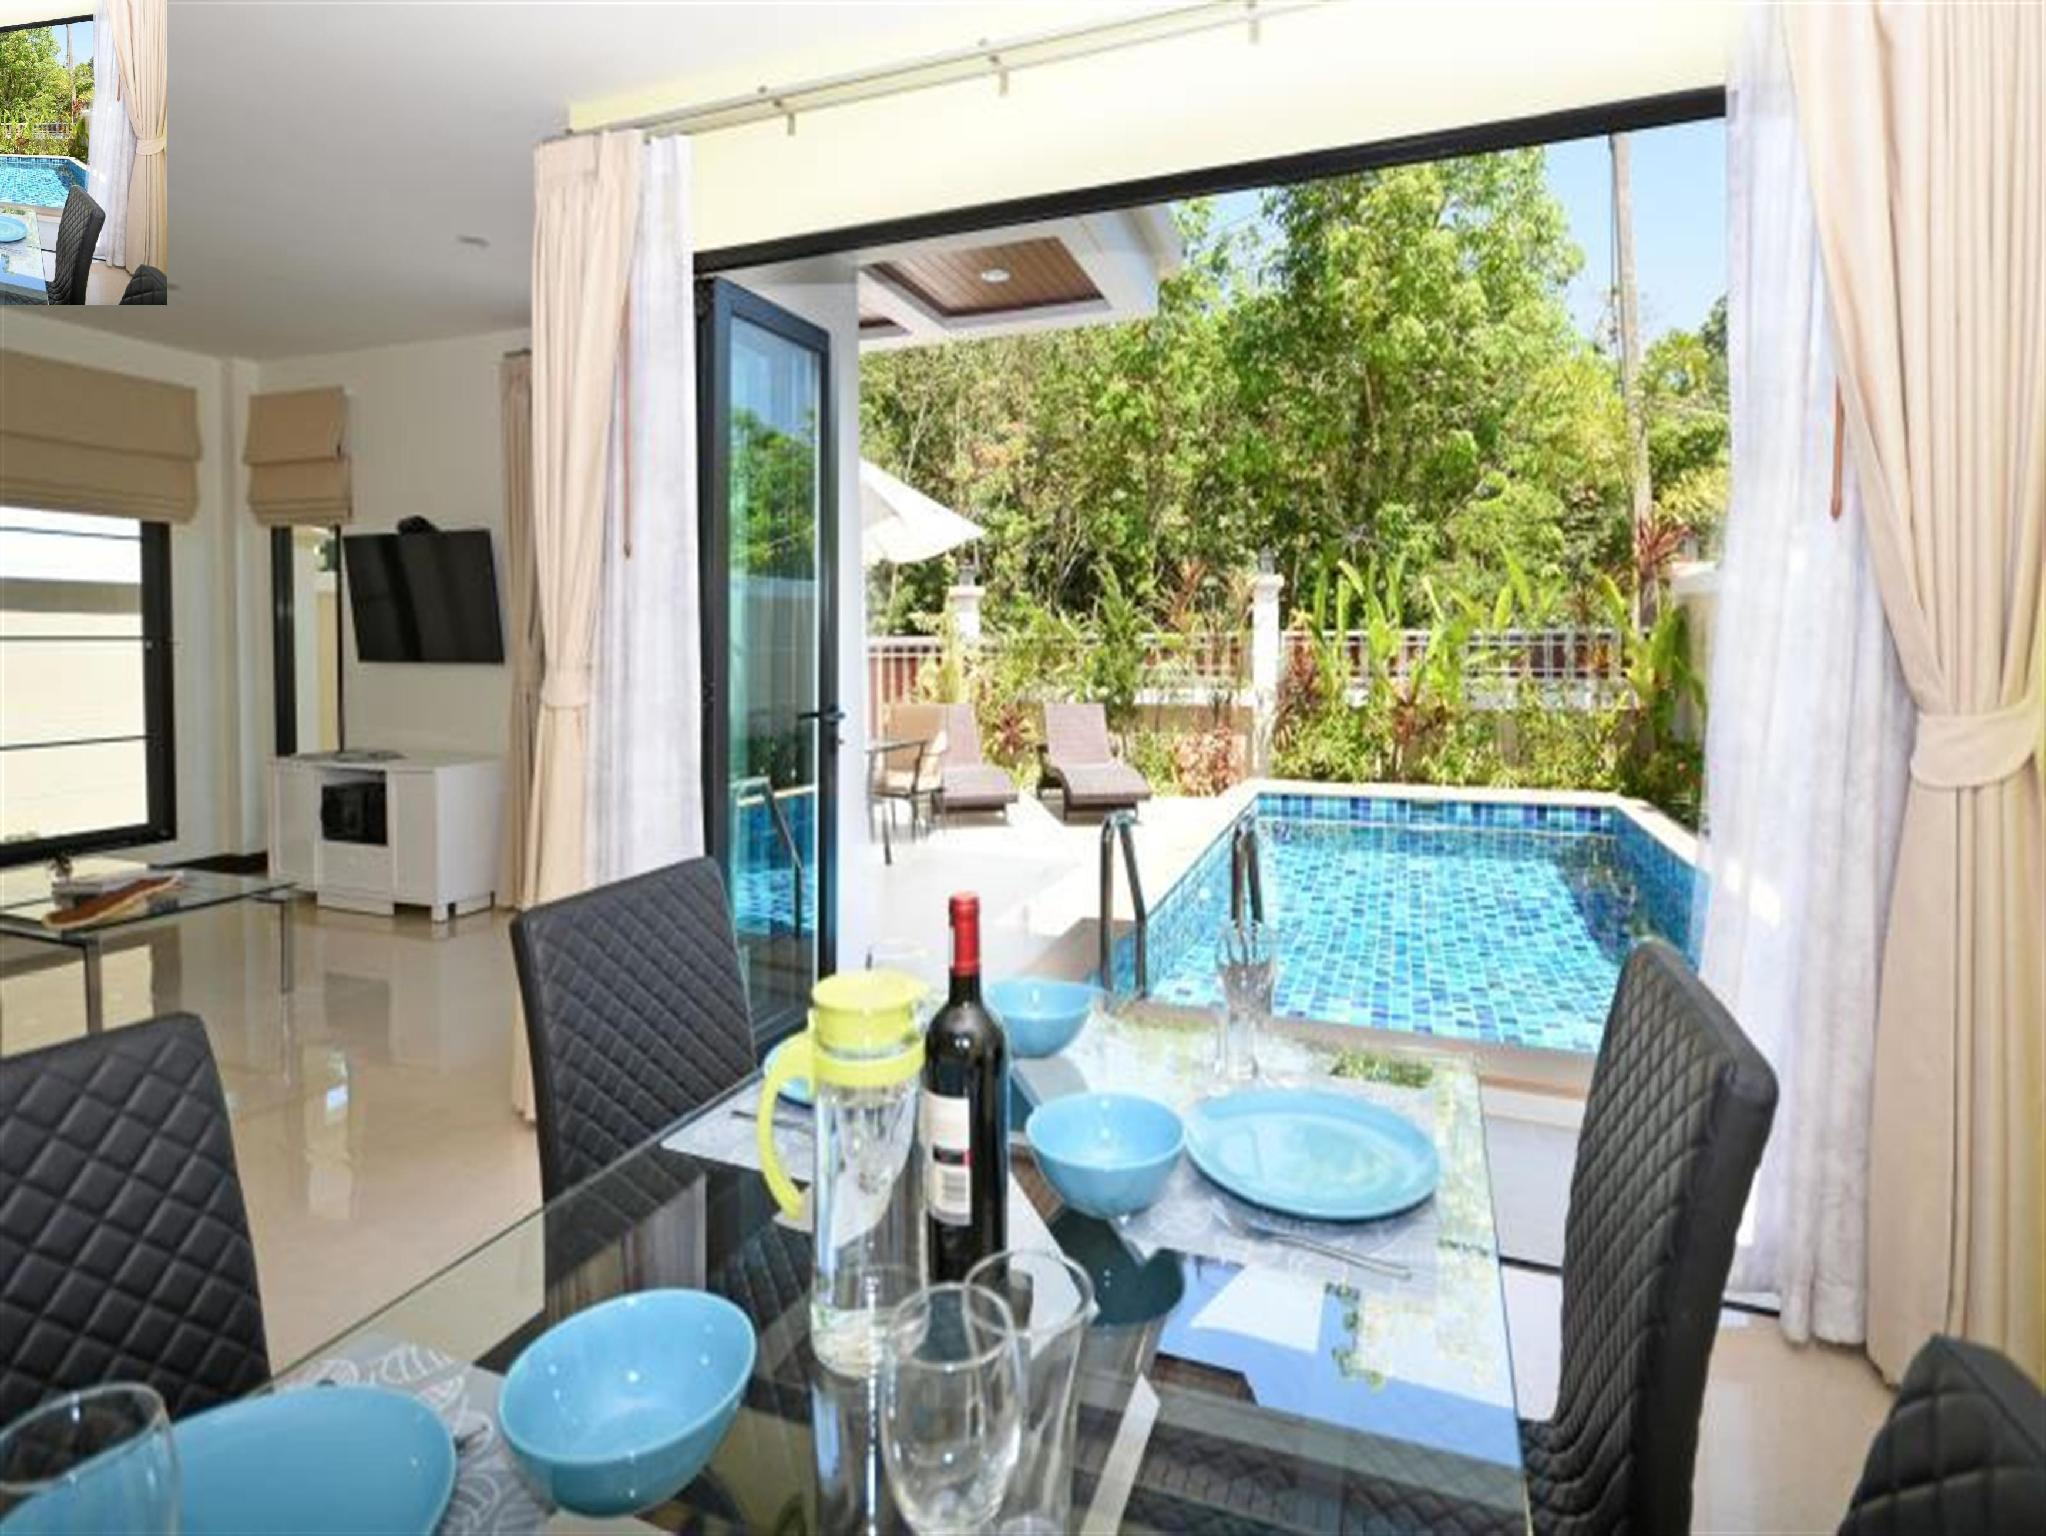 Vila com 2 quartos com piscina privada (2-Bedroom Private Pool Villa)